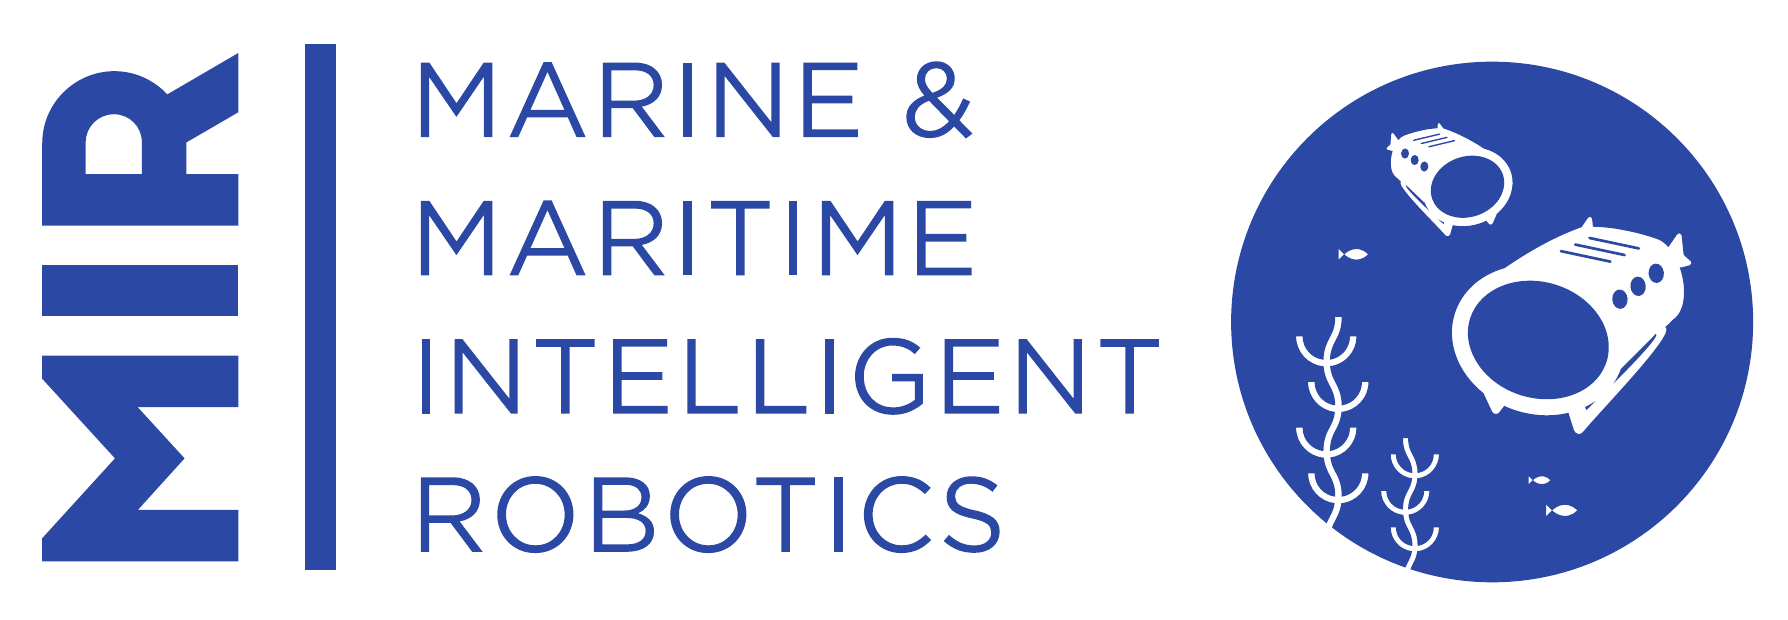 MIR – EMJMD IN MARINE AND MARITIME INTELLIGENT ROBOTICS